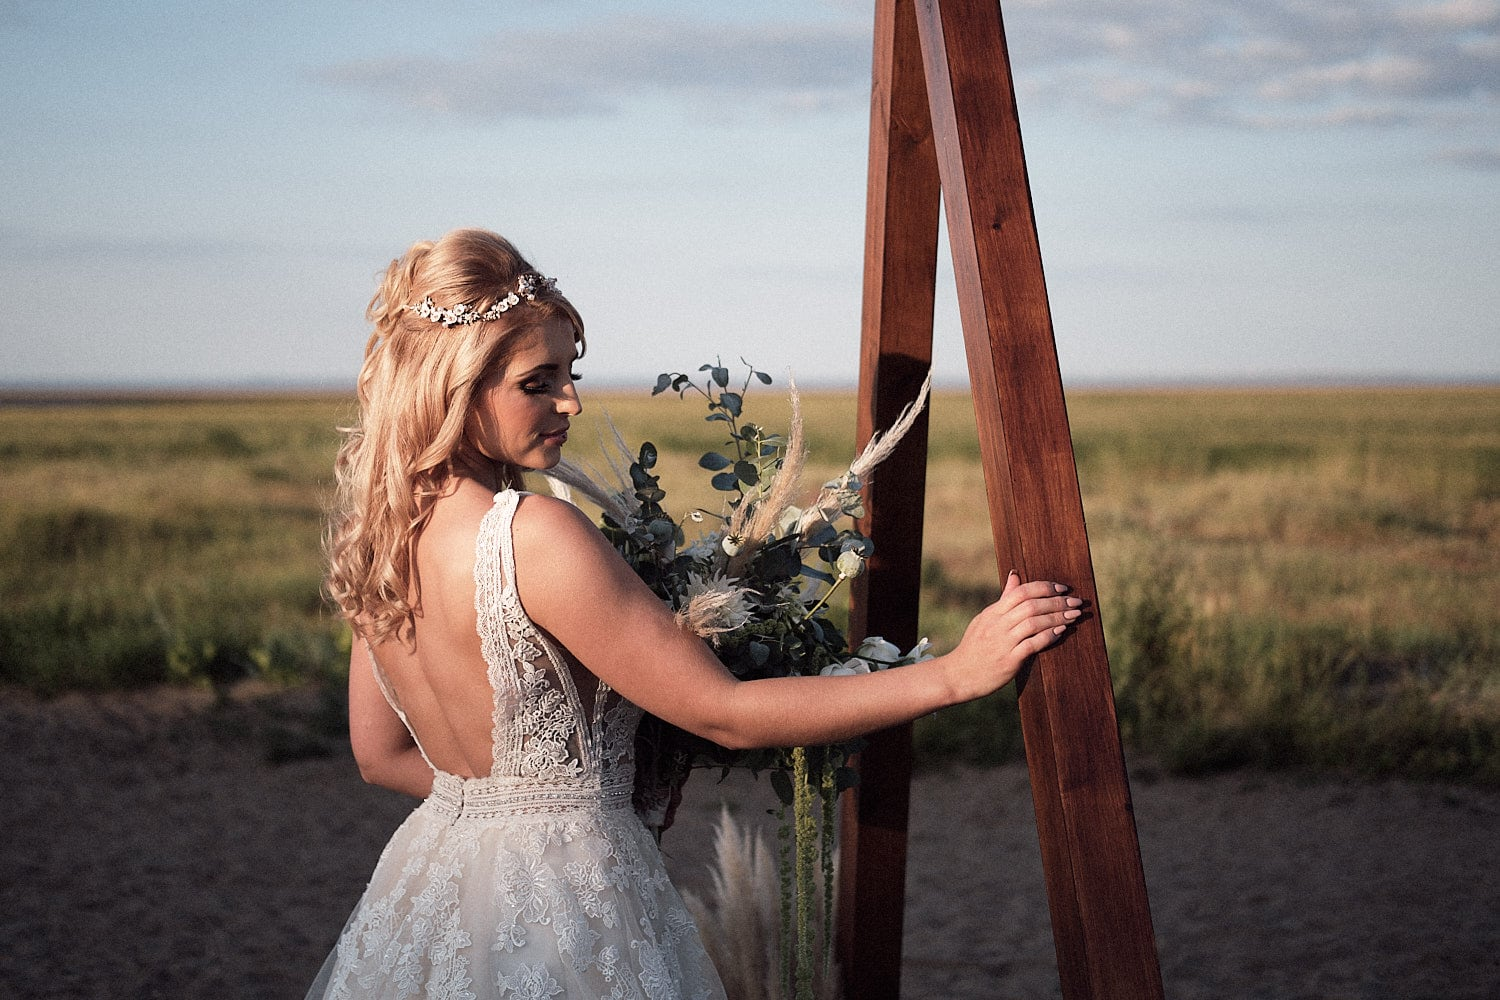 Pinterest shoots like the styled shoot on a beach of a model bride posing